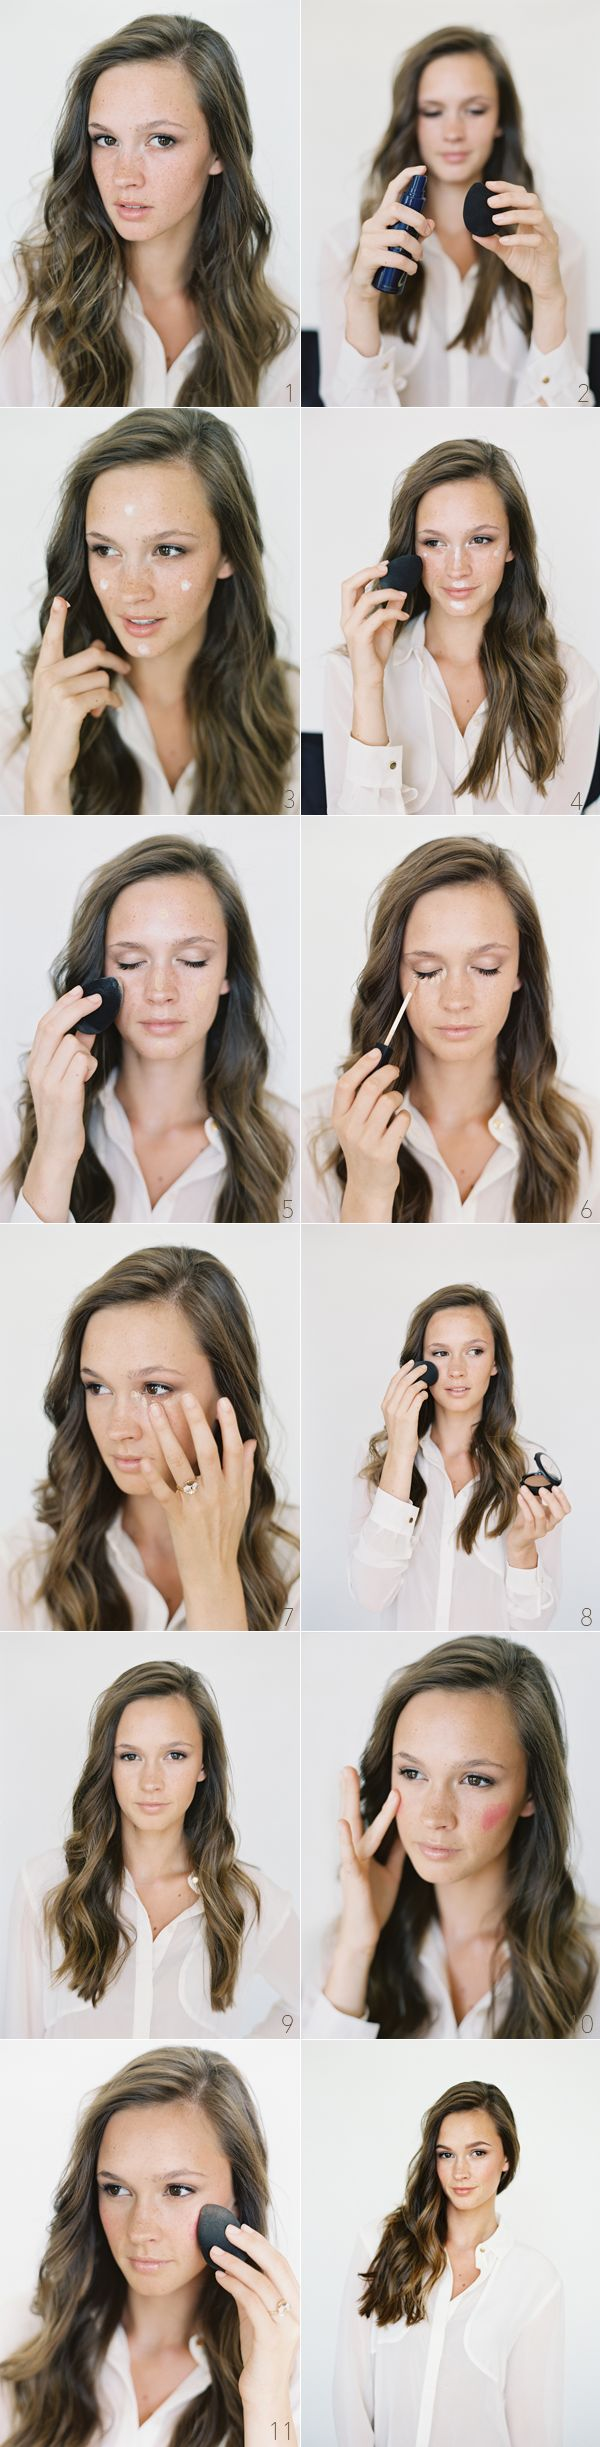 Flawless Skin Beauty Tutorial - #beauty #diyweddings #makeup